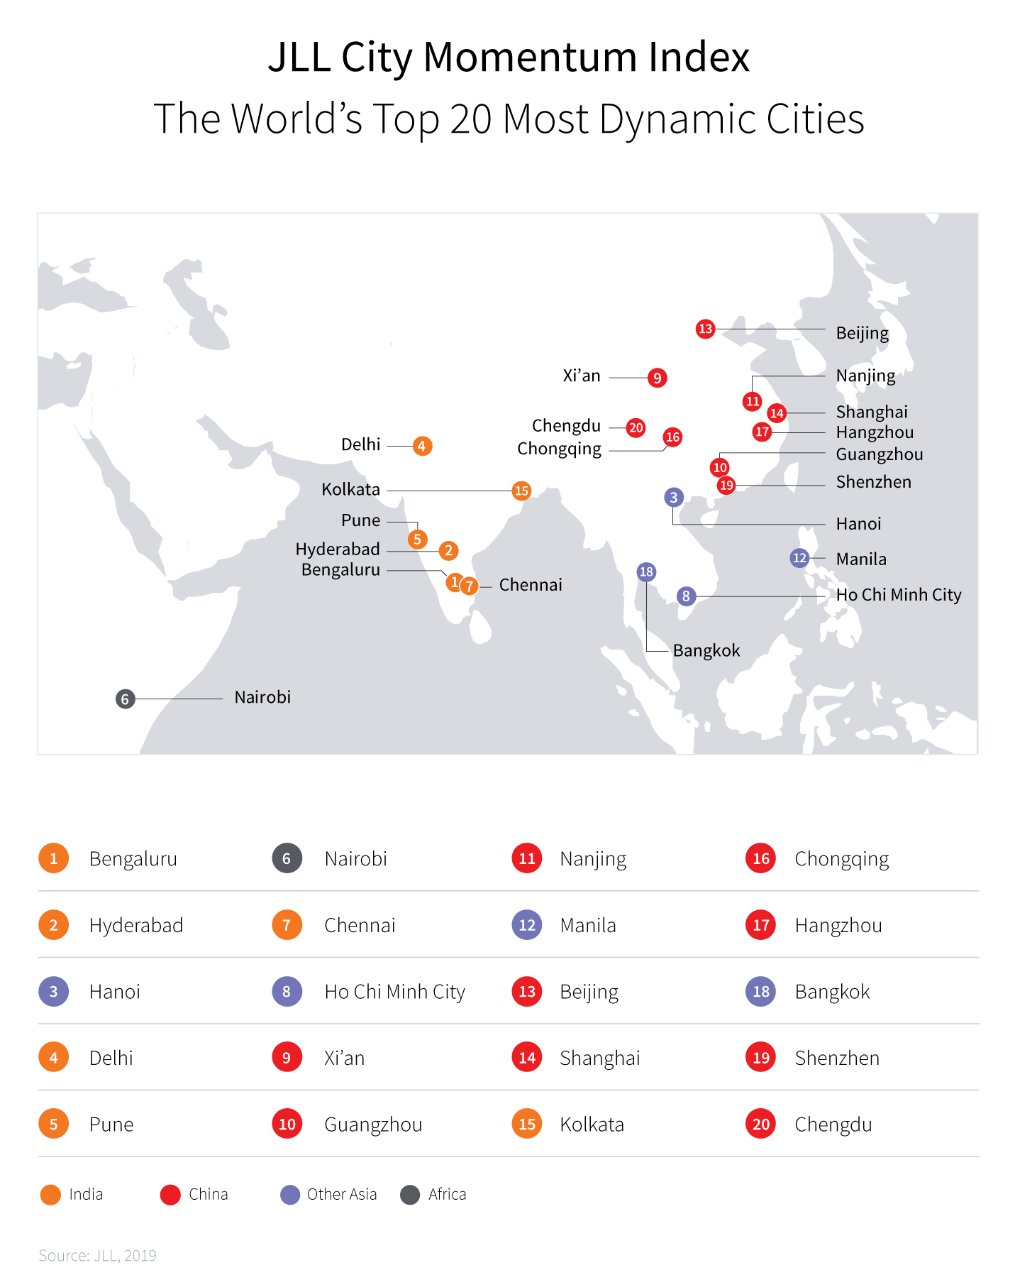 Chinese cities dominate the rankings in JLL's City Momentum